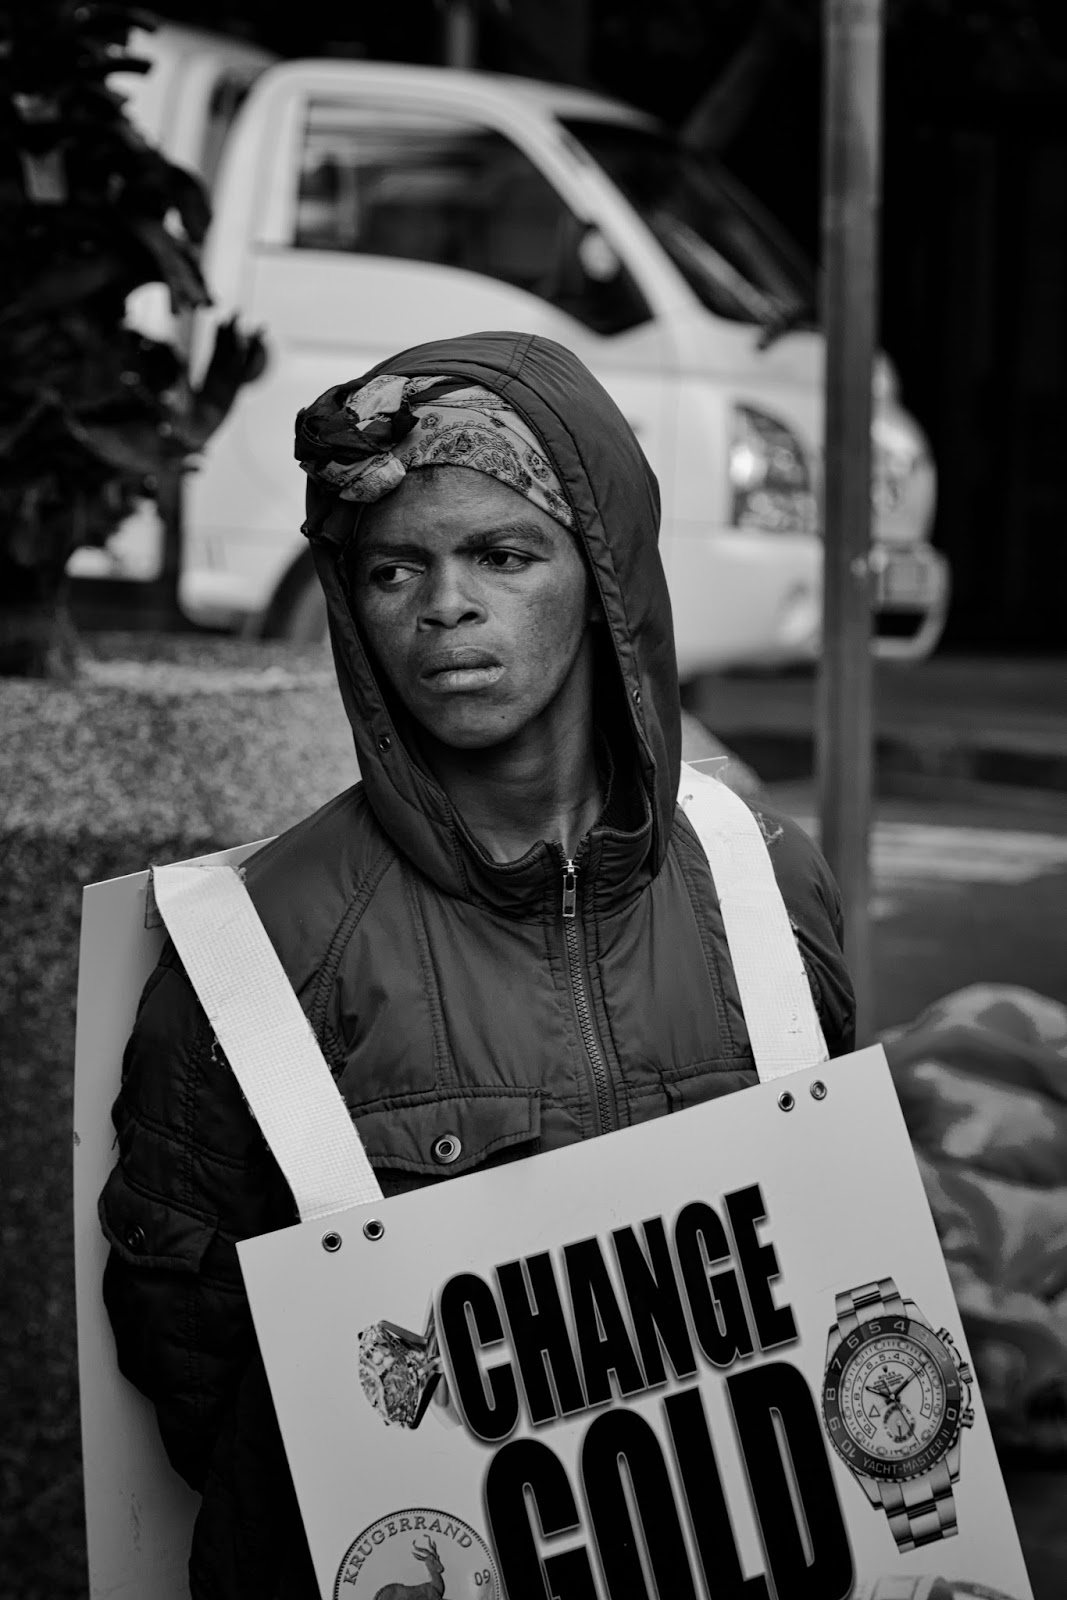 A street portrait of a human billboard holding a change gold sign